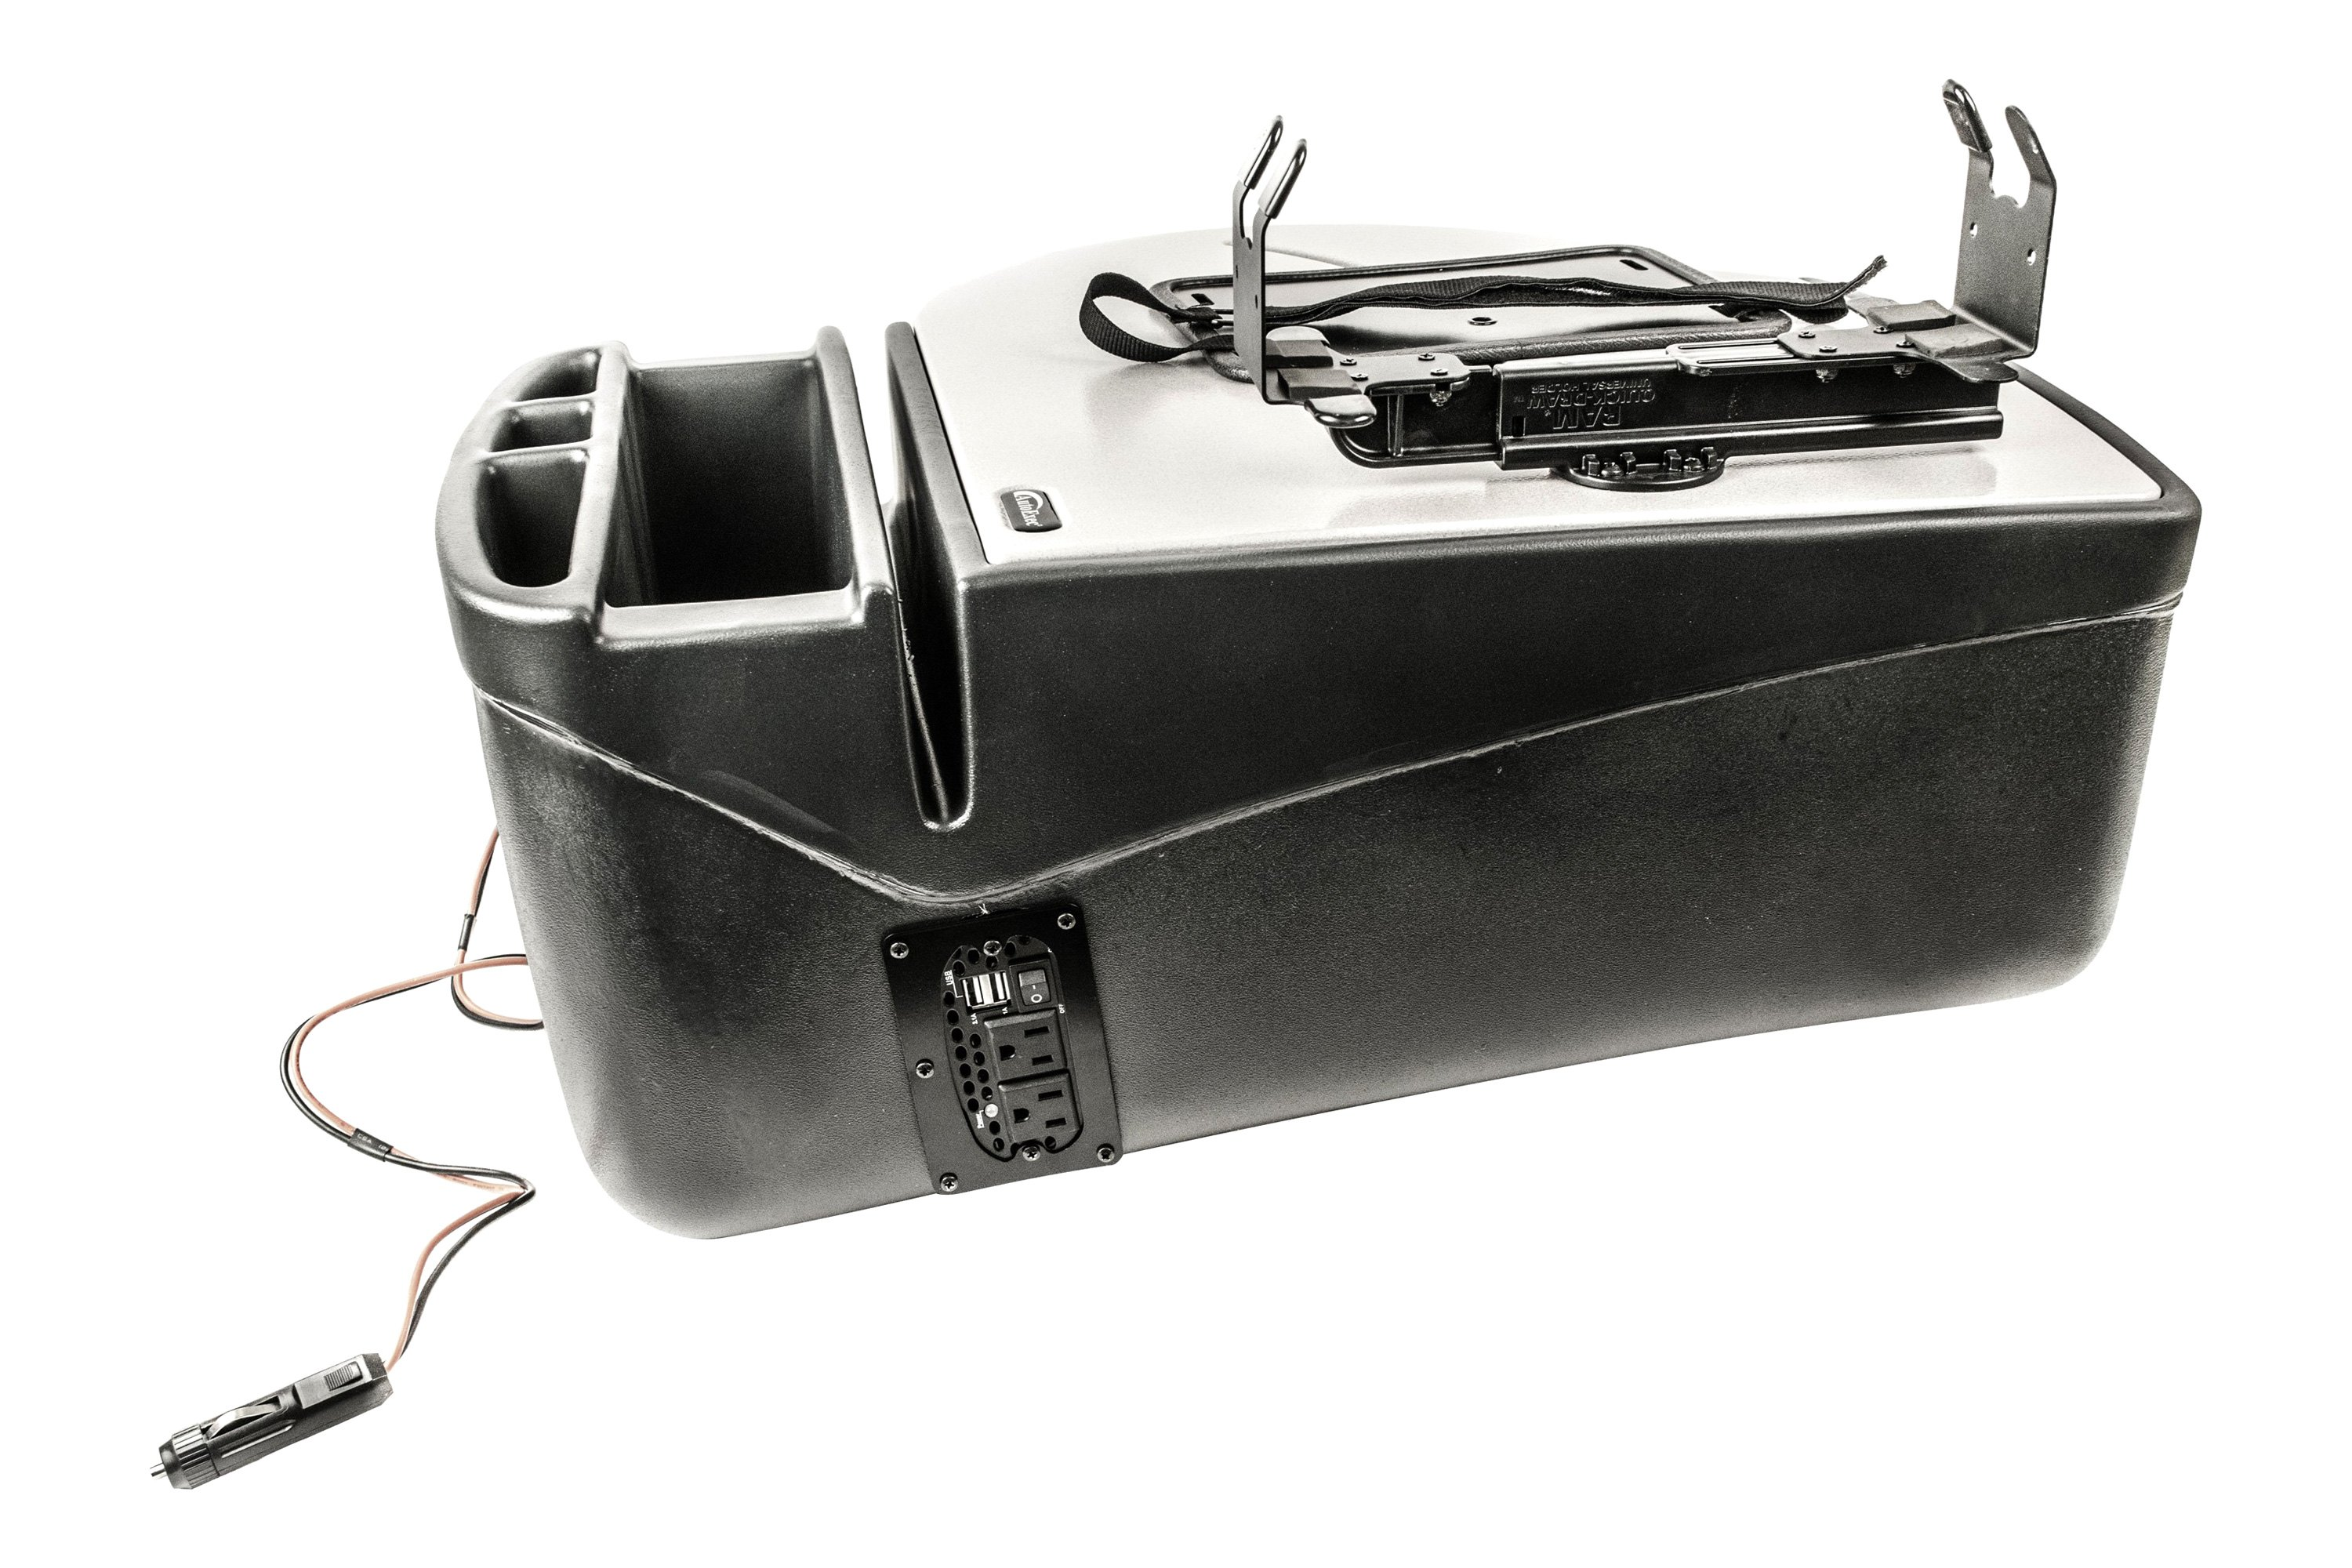 Mountautoexec Roadmaster Car Desk With Built In 200w Inverter And Printer